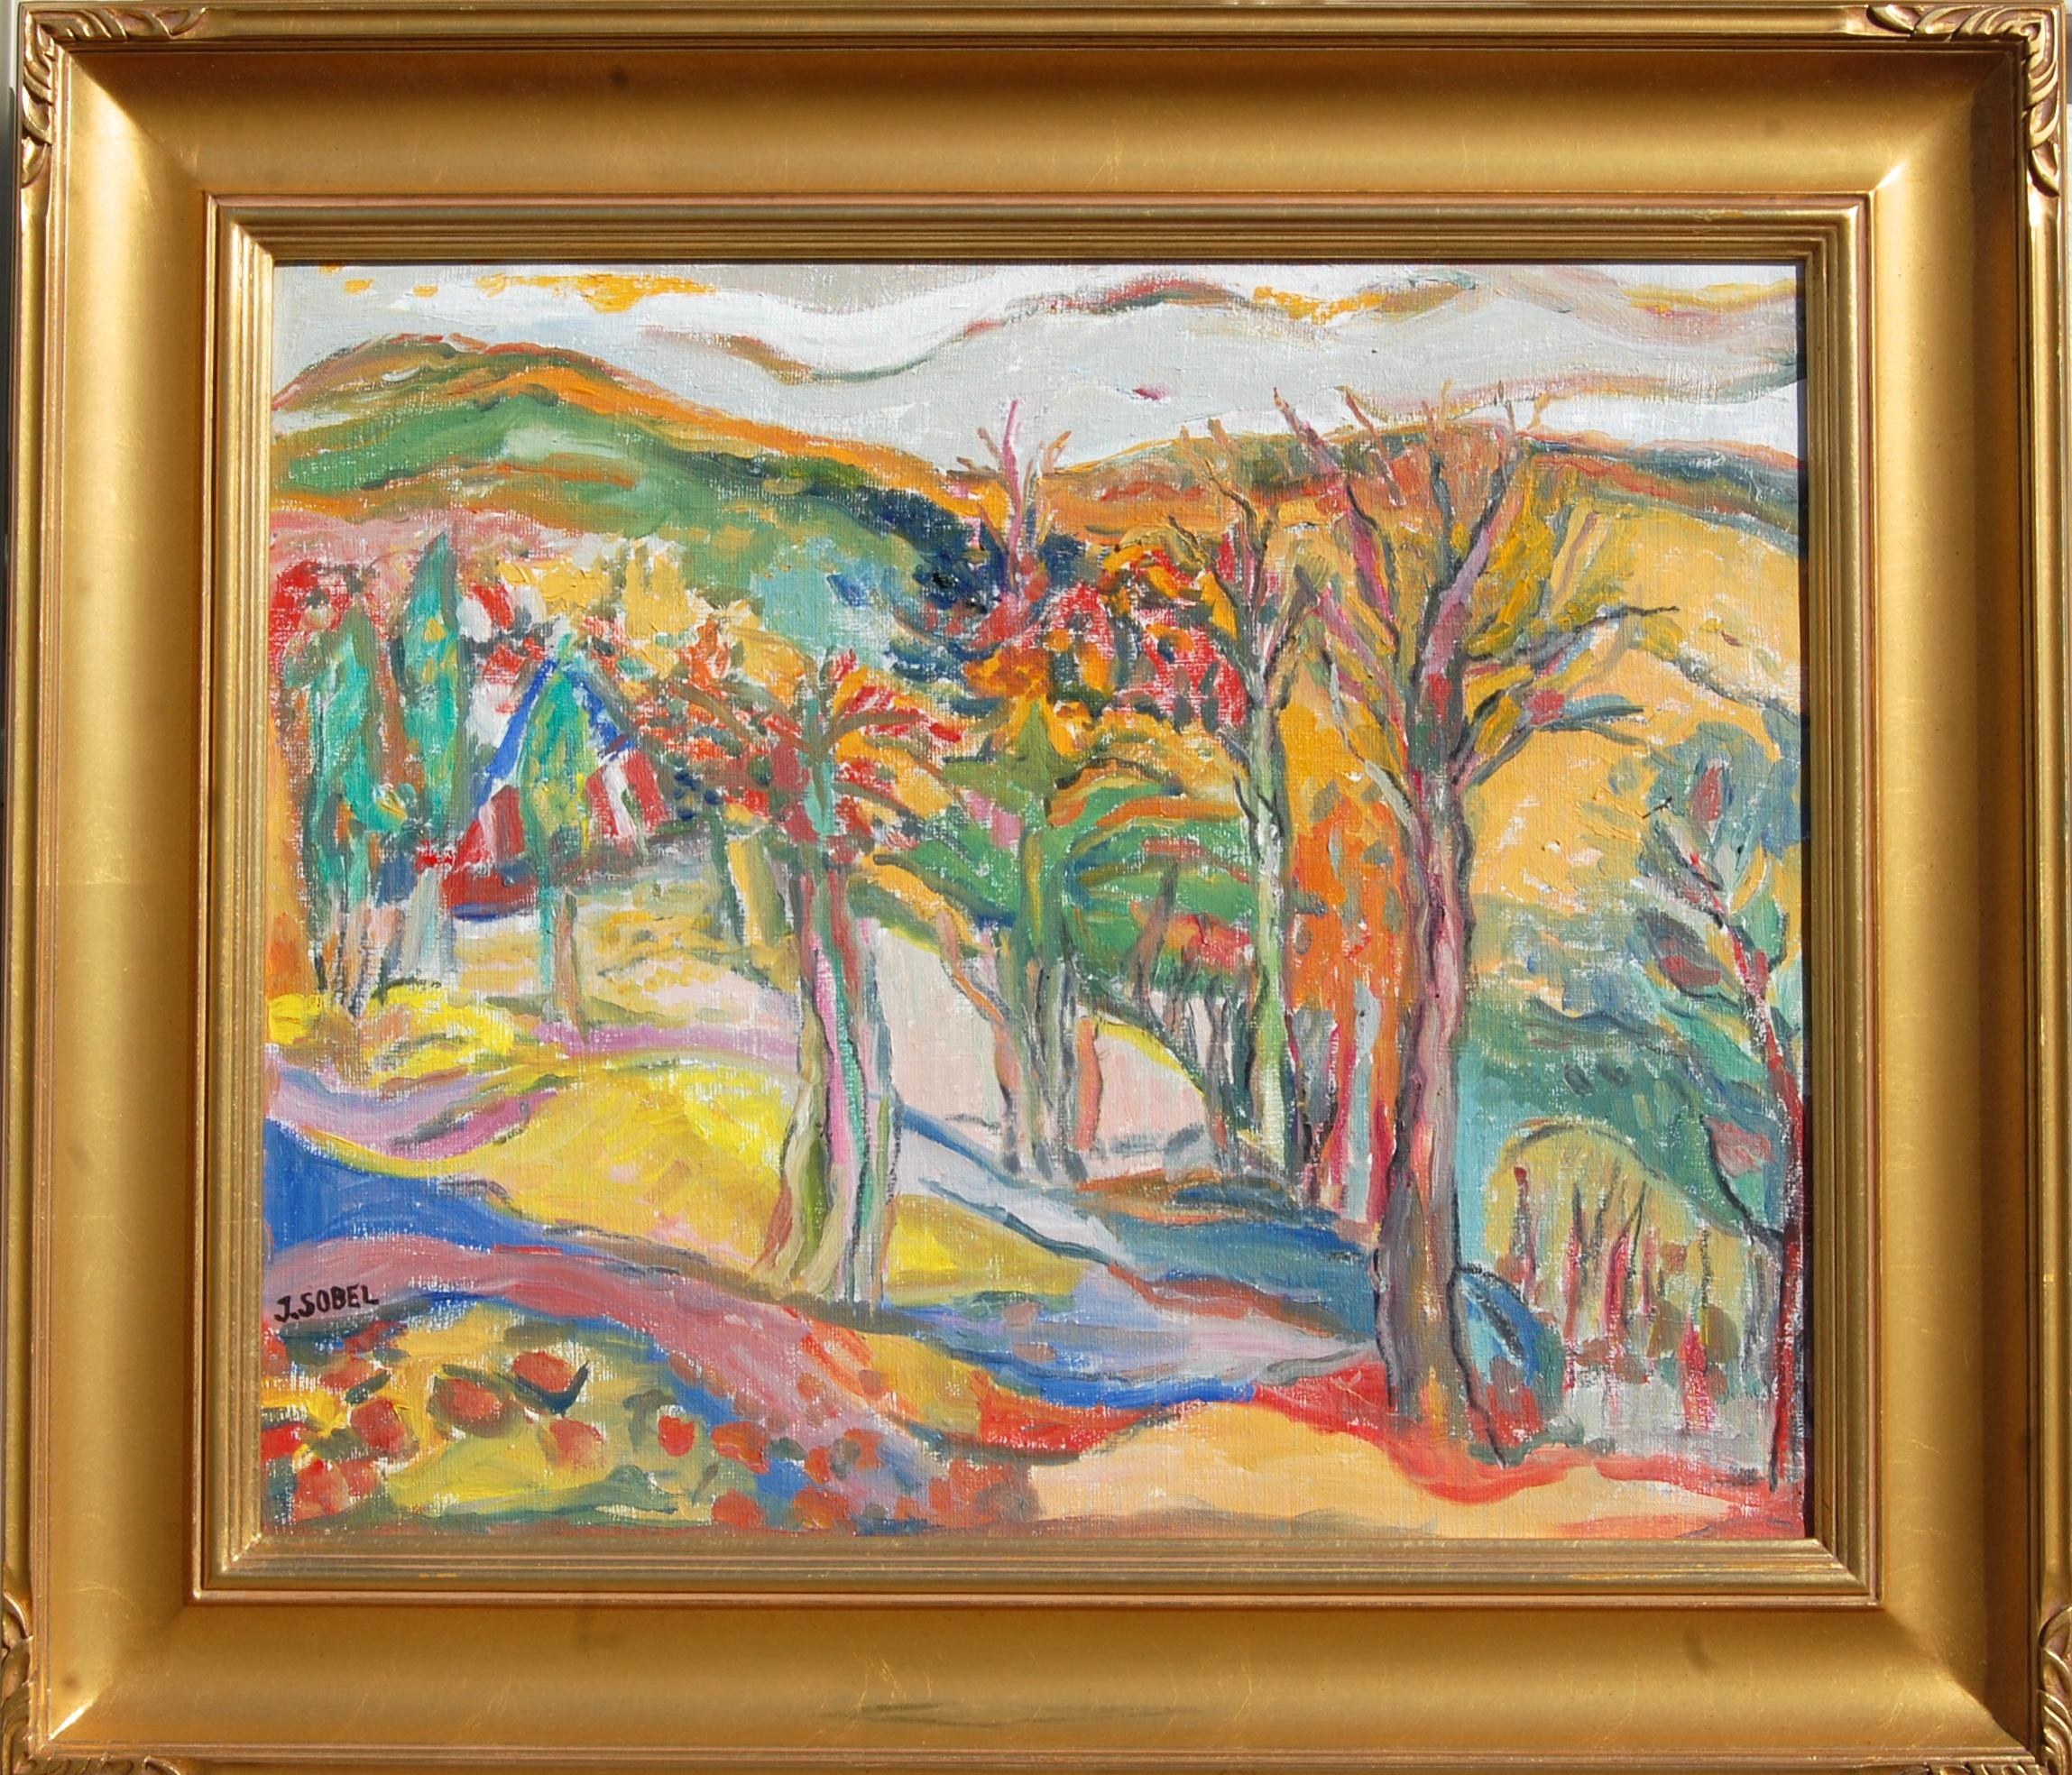 Vibrant Landscape with Mountains Views Oil Painting